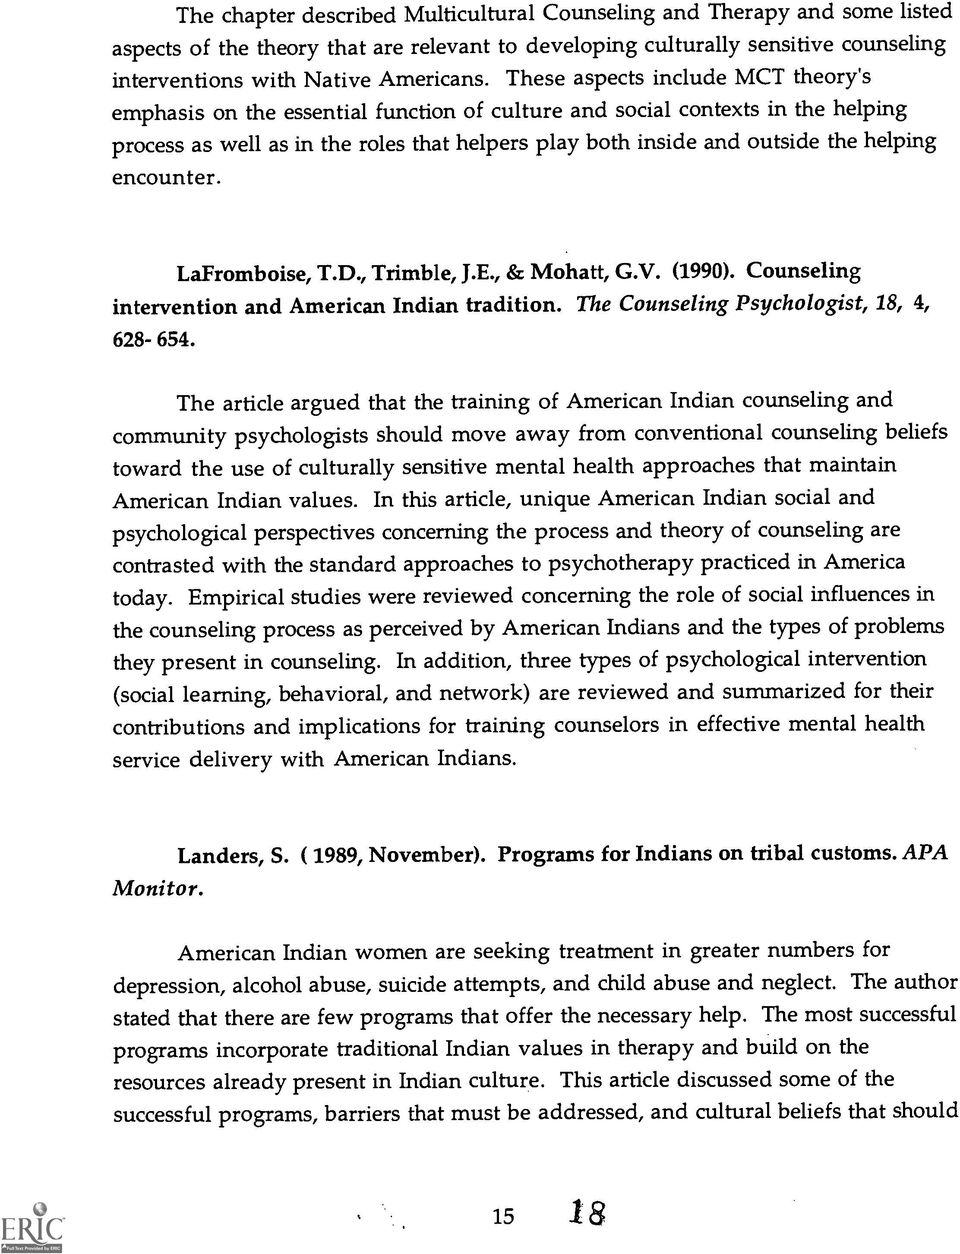 helping encounter. LaFromboise, T.D., Trimble, J.E., & Mohatt, G.V. (1990). Counseling intervention and American Indian tradition. The Counseling Psychologist, 18, 4, 628-654.